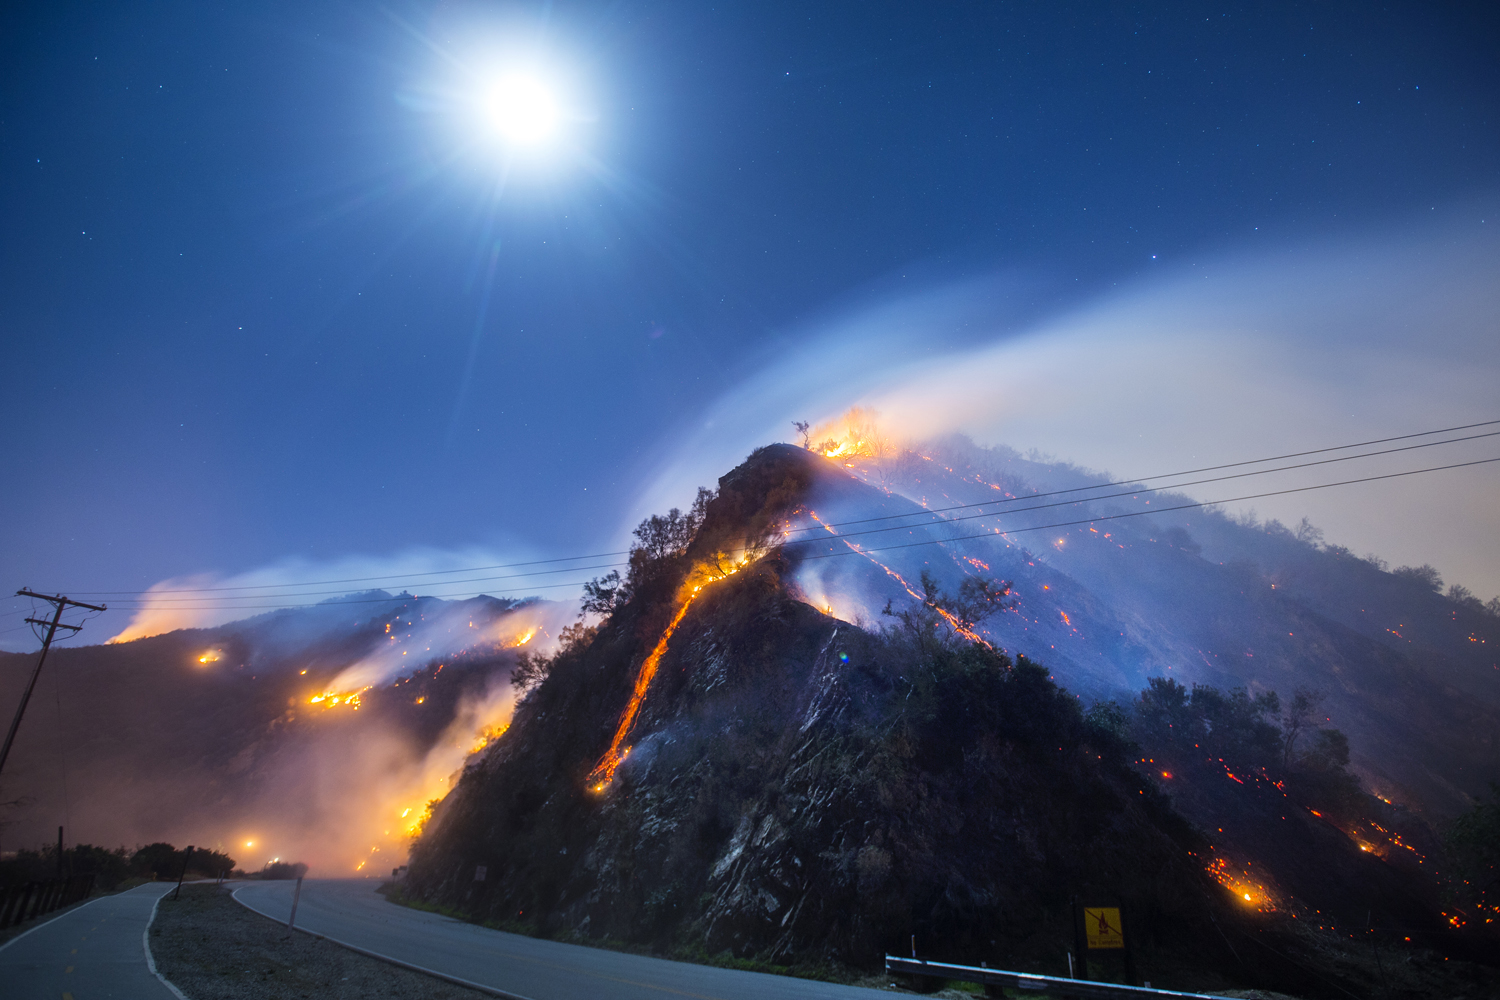 A full moon rises over the active flank of the Colbert Fire off San Gabriel Canyon Road in Azusa, Calif., Thousands of people were under mandatory evacuation orders overnight, Jan. 17,  2014.